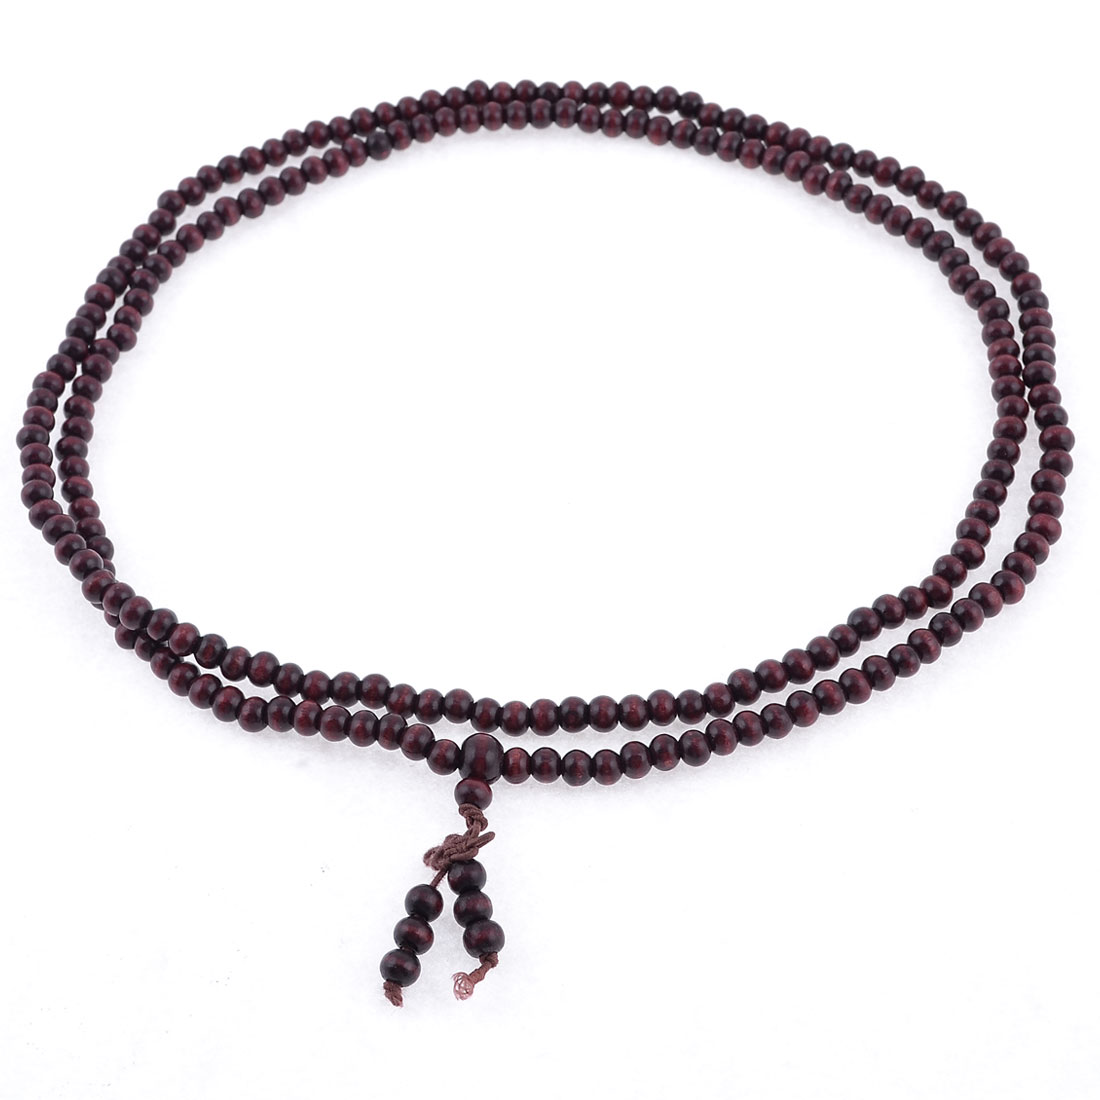 Burgundy 6mm Dia 216 Buddha 98cm Girth Wooden Beads Necklace for Buddhist Prayer